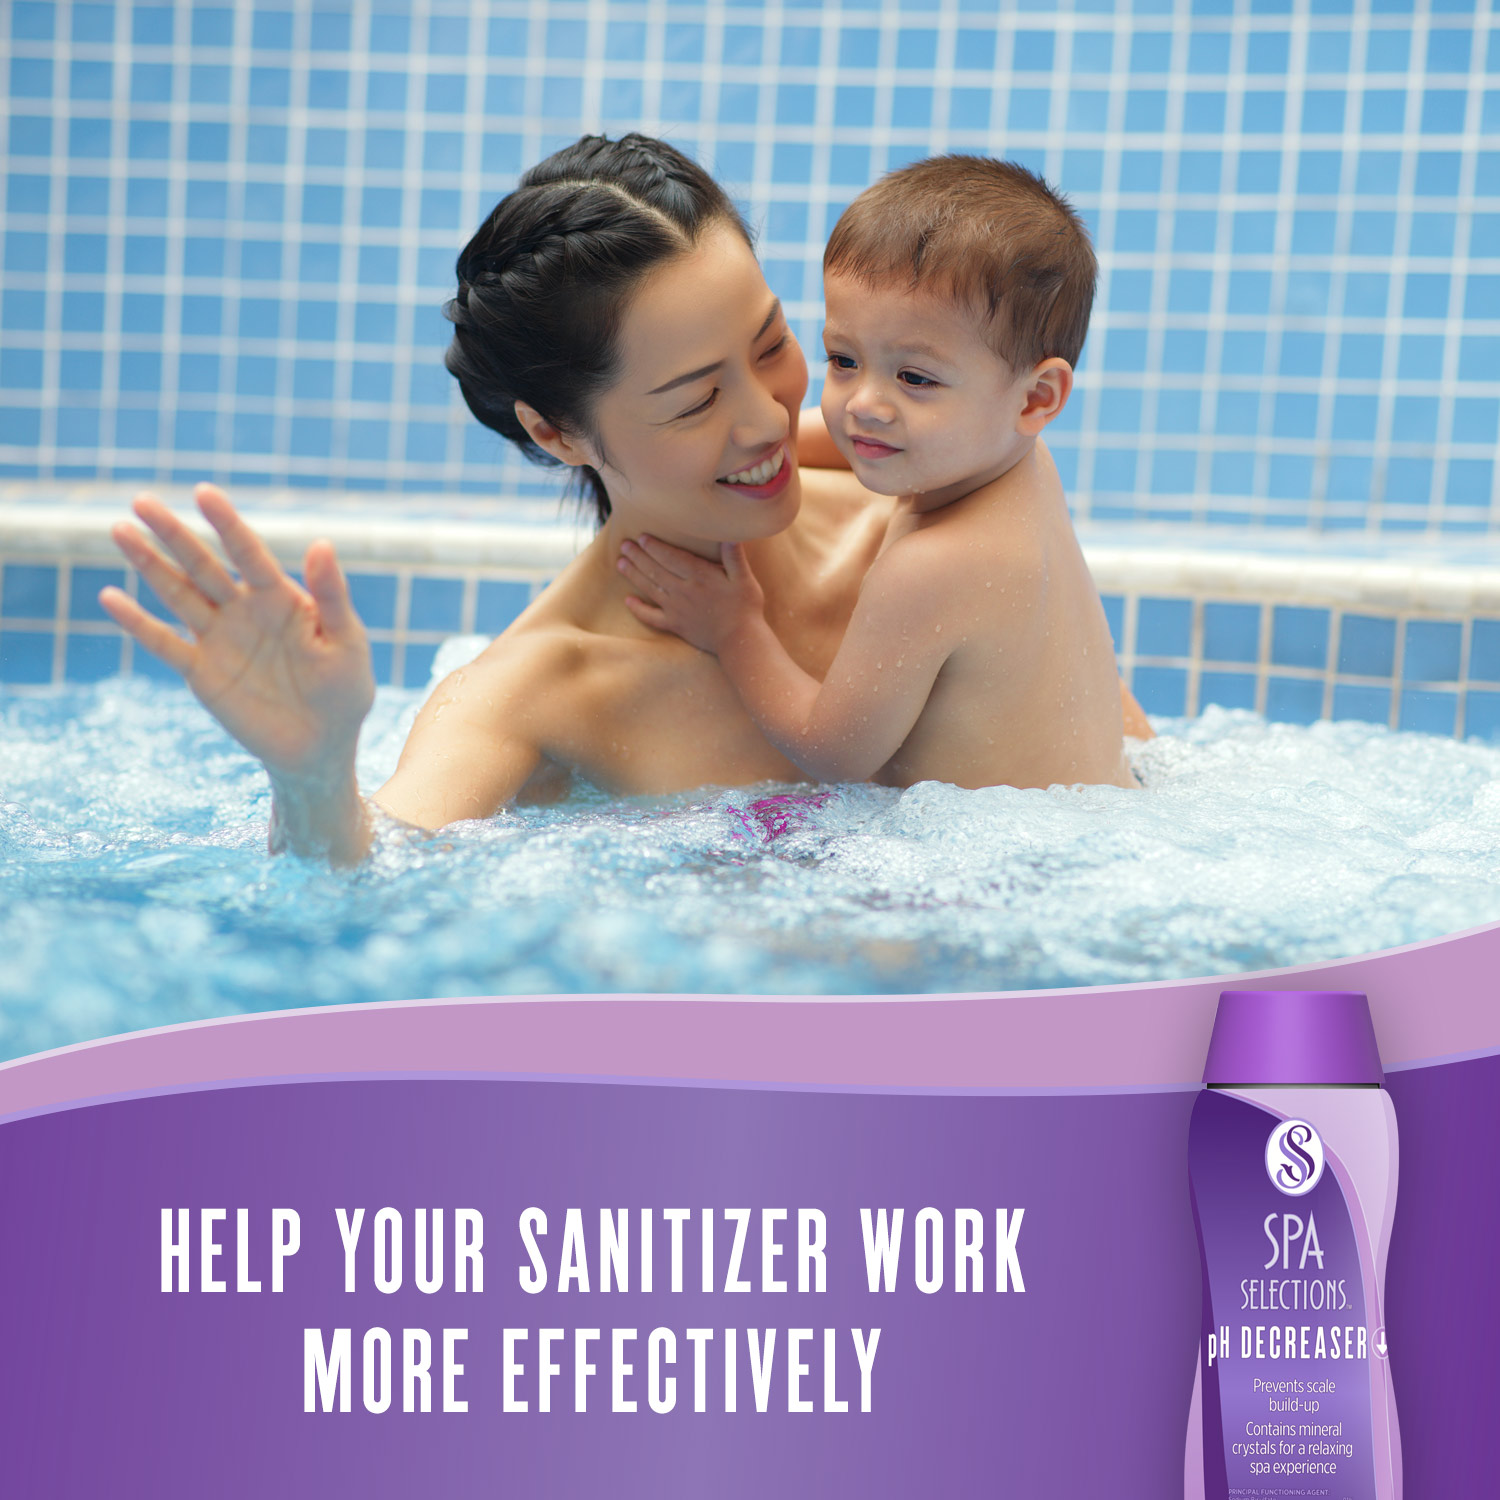 Mother holding young child enjoying a hot tub. Help your sanitizer work more effectively with Spa Selections pH Decreaser.